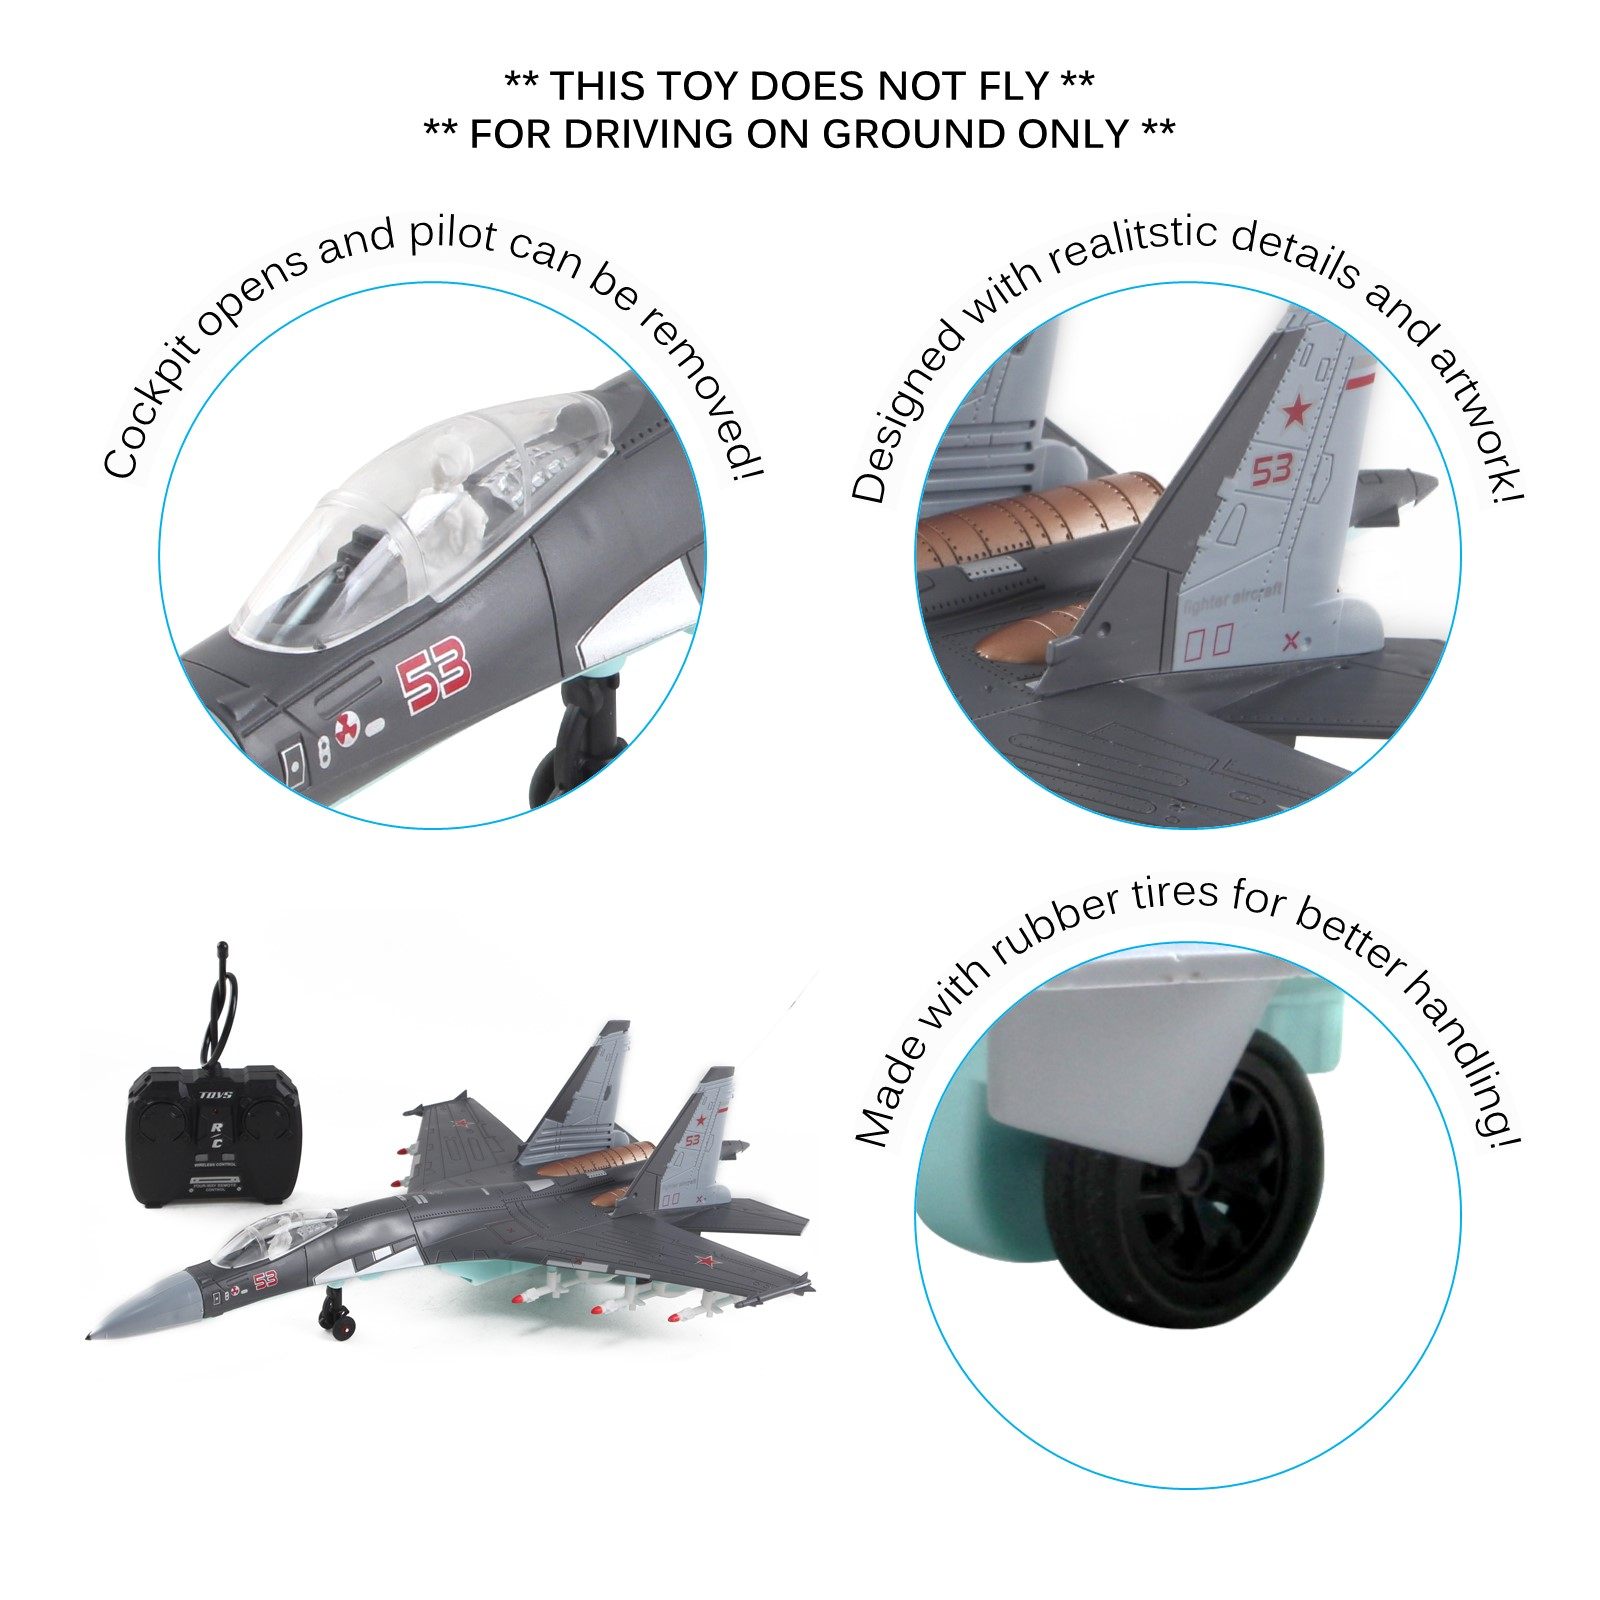 Vokodo RC Military Fighter Jet 18 Inch Stealth Bomber Non-Flying Air Force Army Toys Remote Control Airplane Realistic Pretend Play Kids Action Aircraft Plane Great Gift For Children Boys Girls Gray